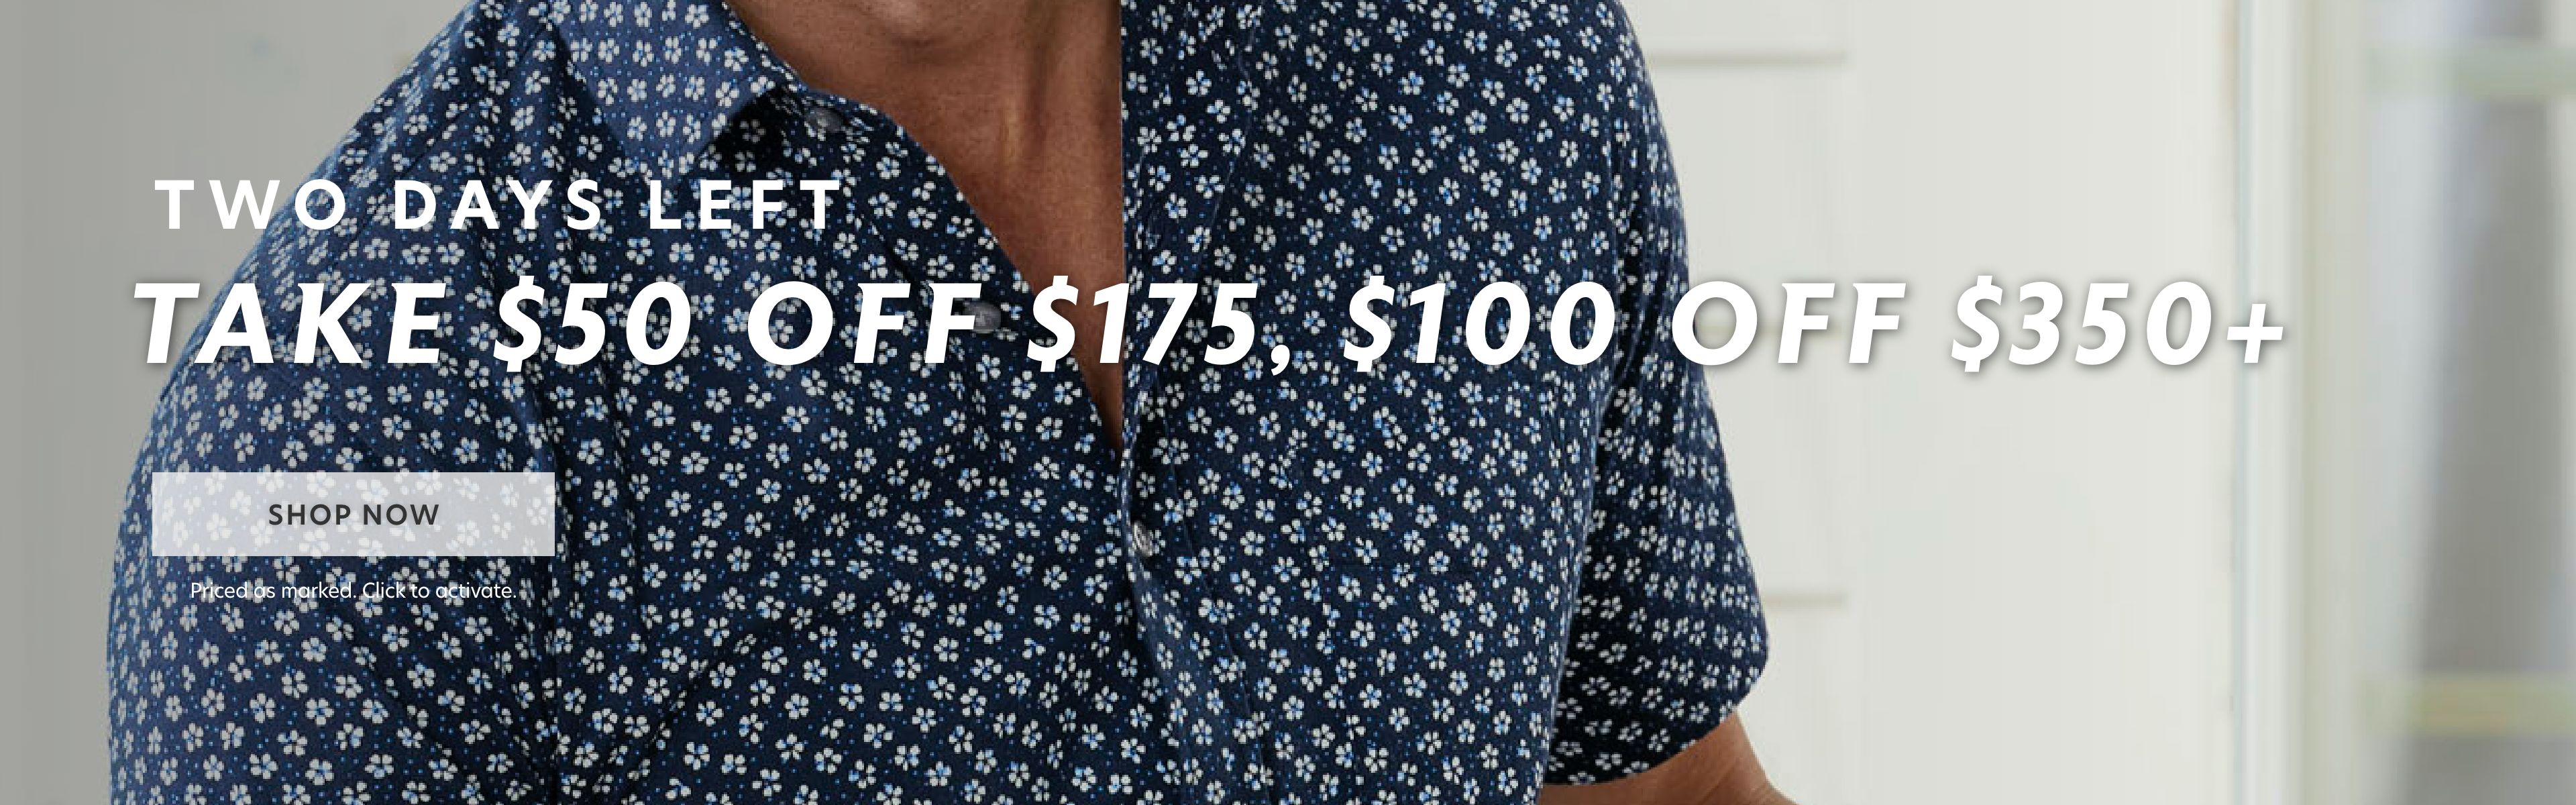 Two Days Left:Take $50 Off $175, $100 Off $350+